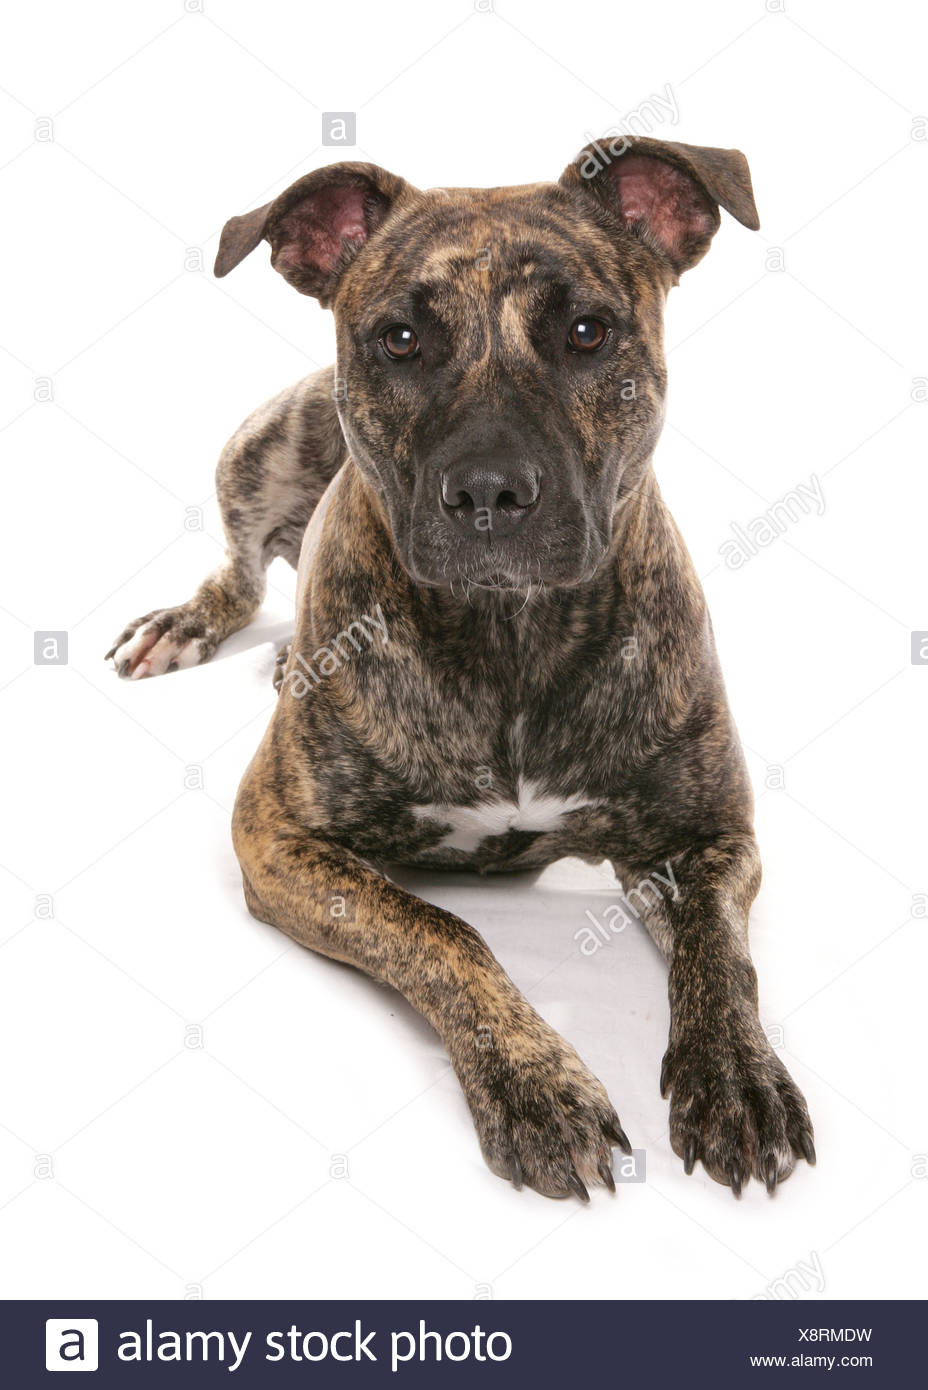 half breed dog (Staffordshire Bull Terrier) - lying - cut out - Stock Image